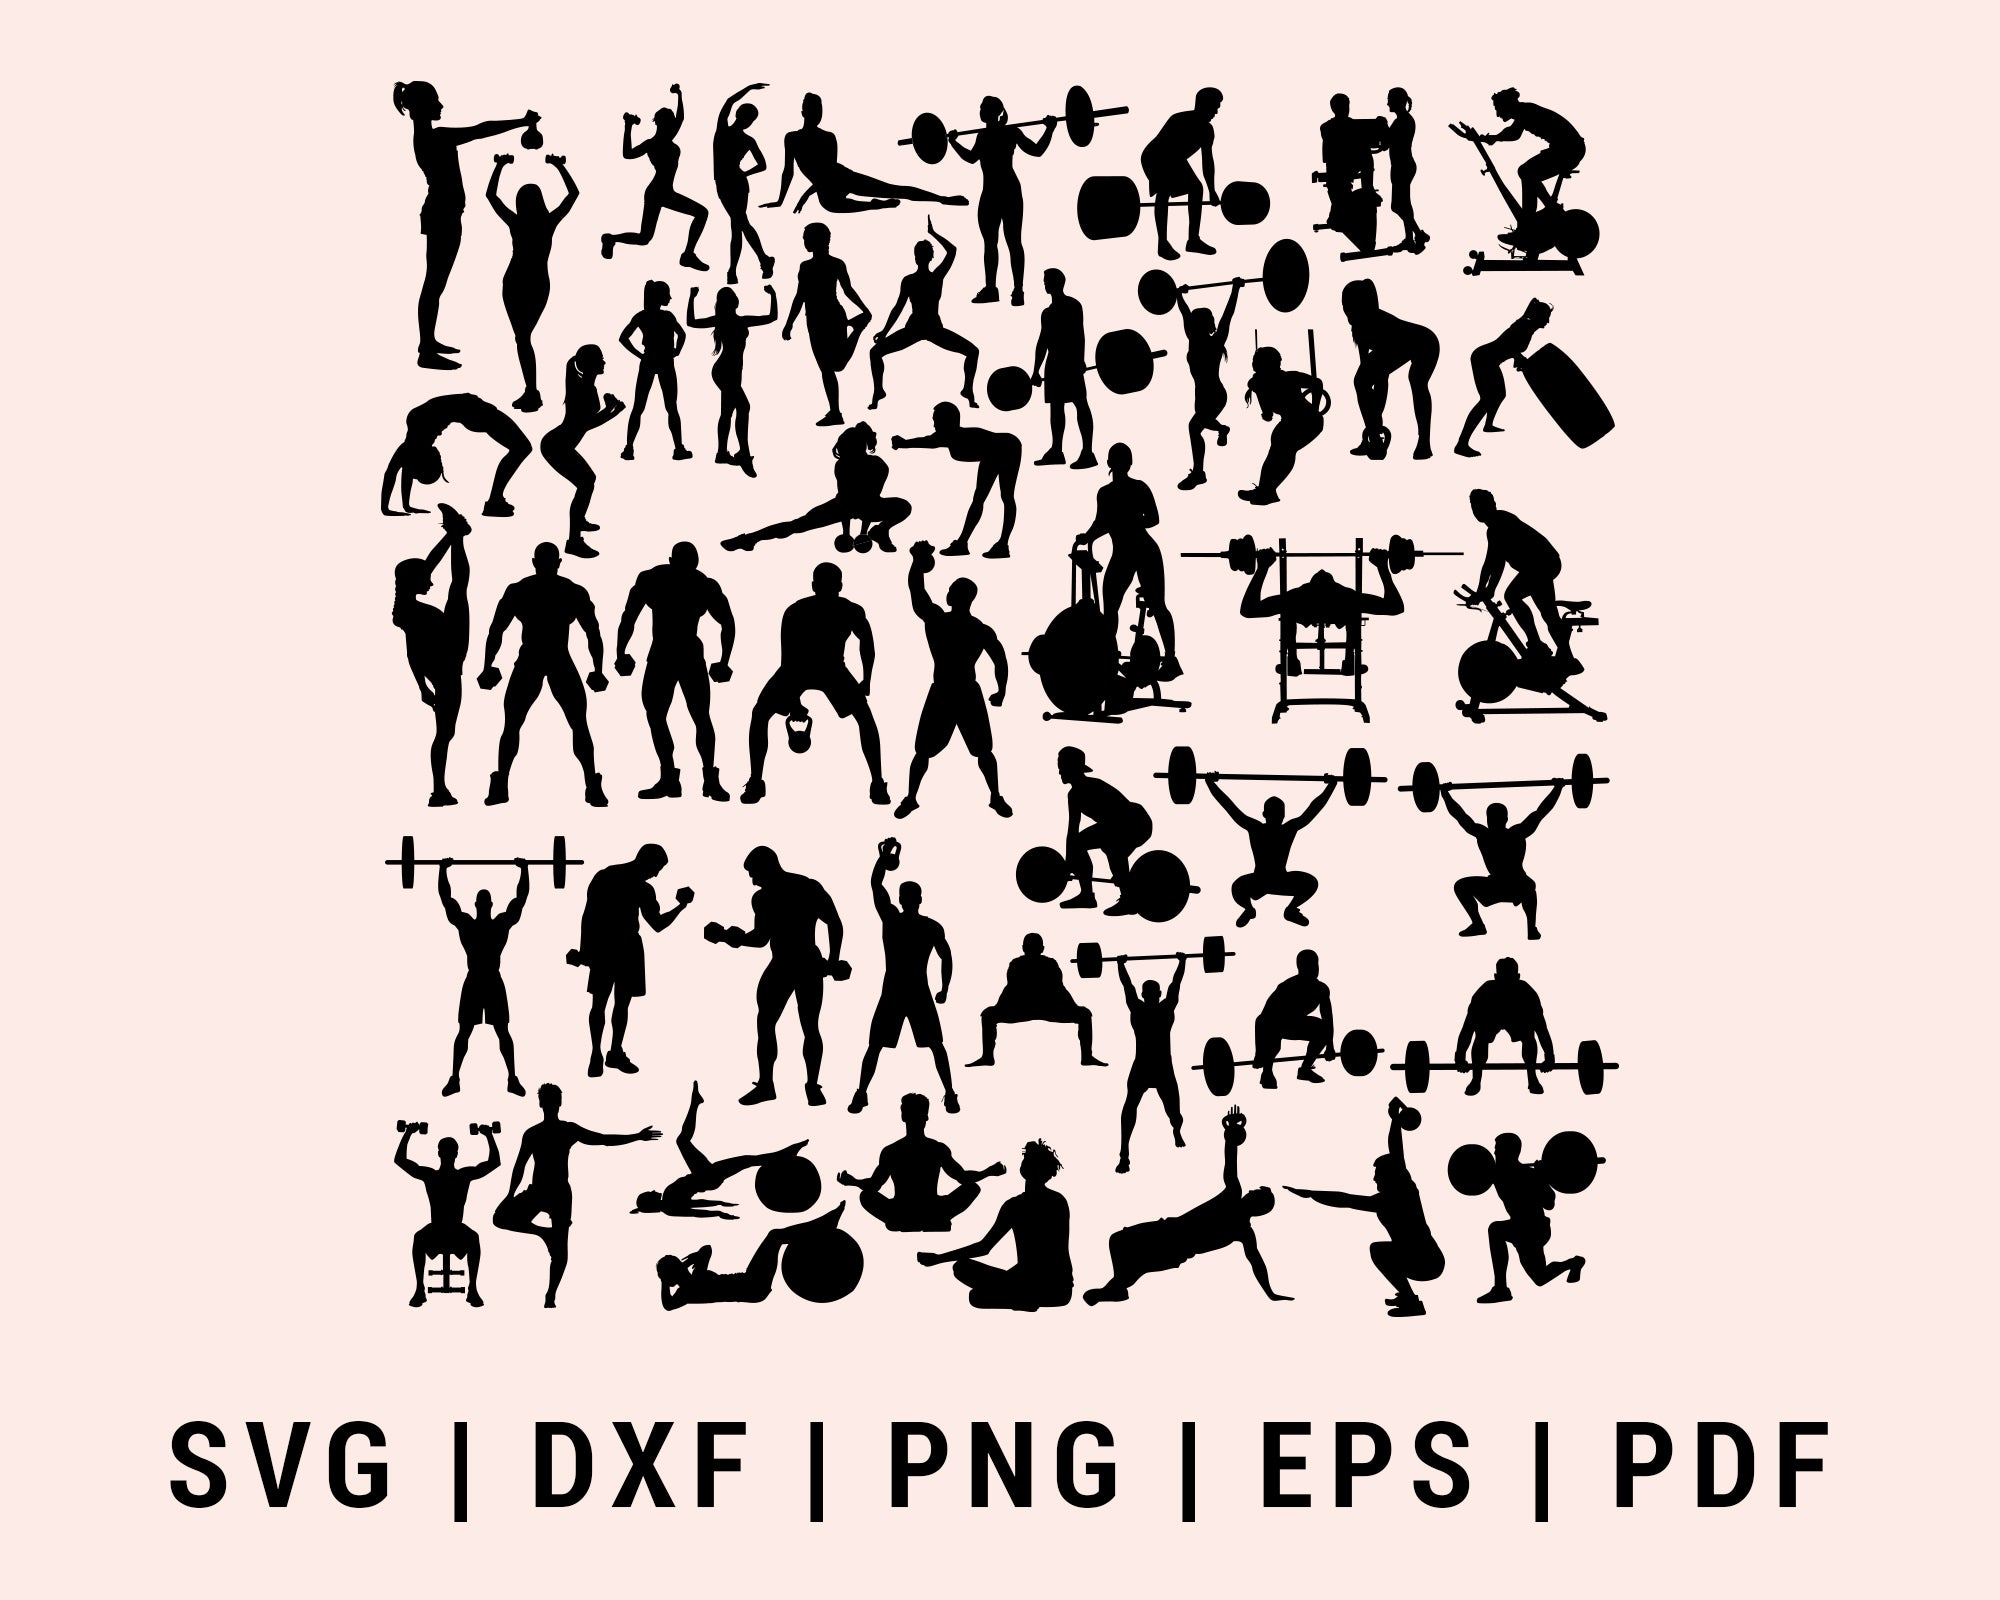 Fitness Bodybuilder Gym Workout Bodybuilding Muscles Barbell Bundle Dumbbells SVG, DXF, PNG, EPS, PDF Cricut Silhouette Printable Files